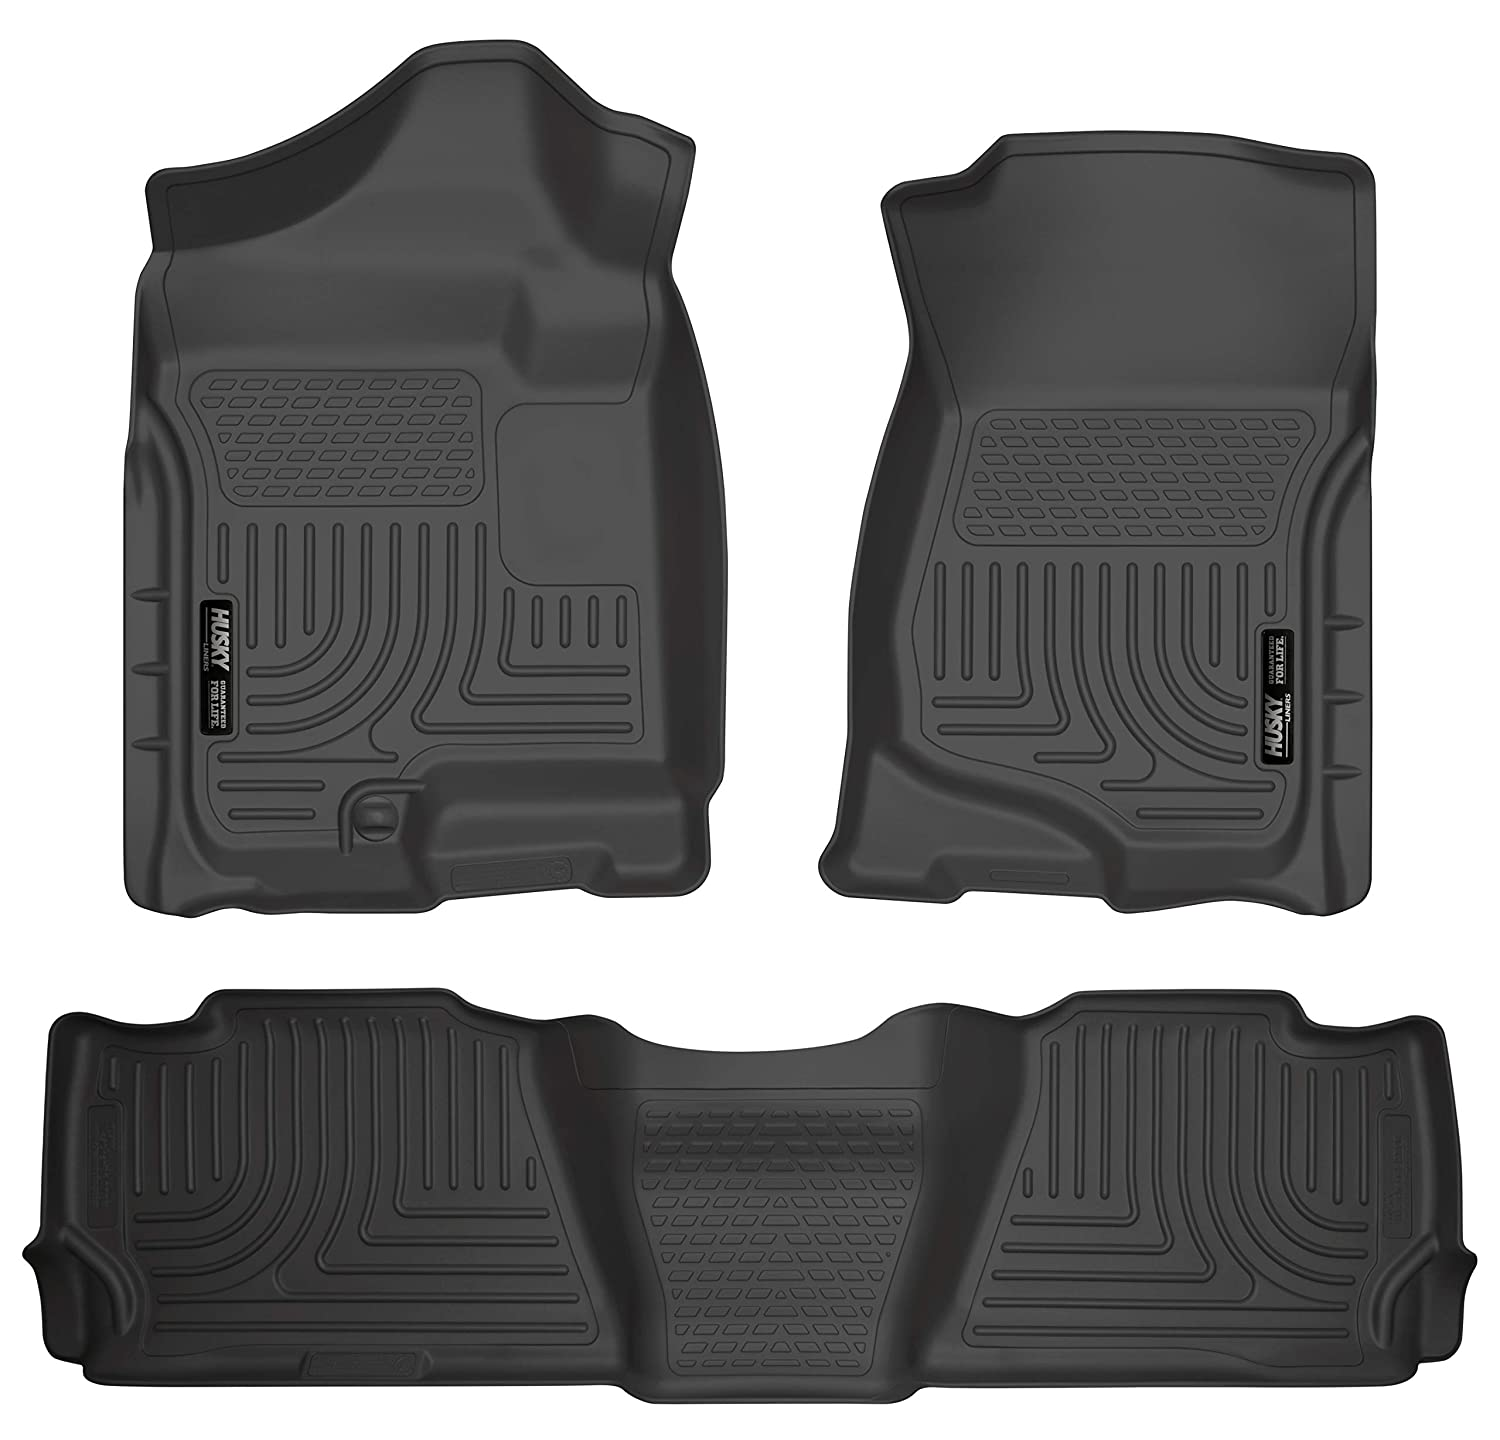 Husky Liners Front /& 2nd Seat Floor Liners Fits 07-14 Escalade//Tahoe//Yukon 98251